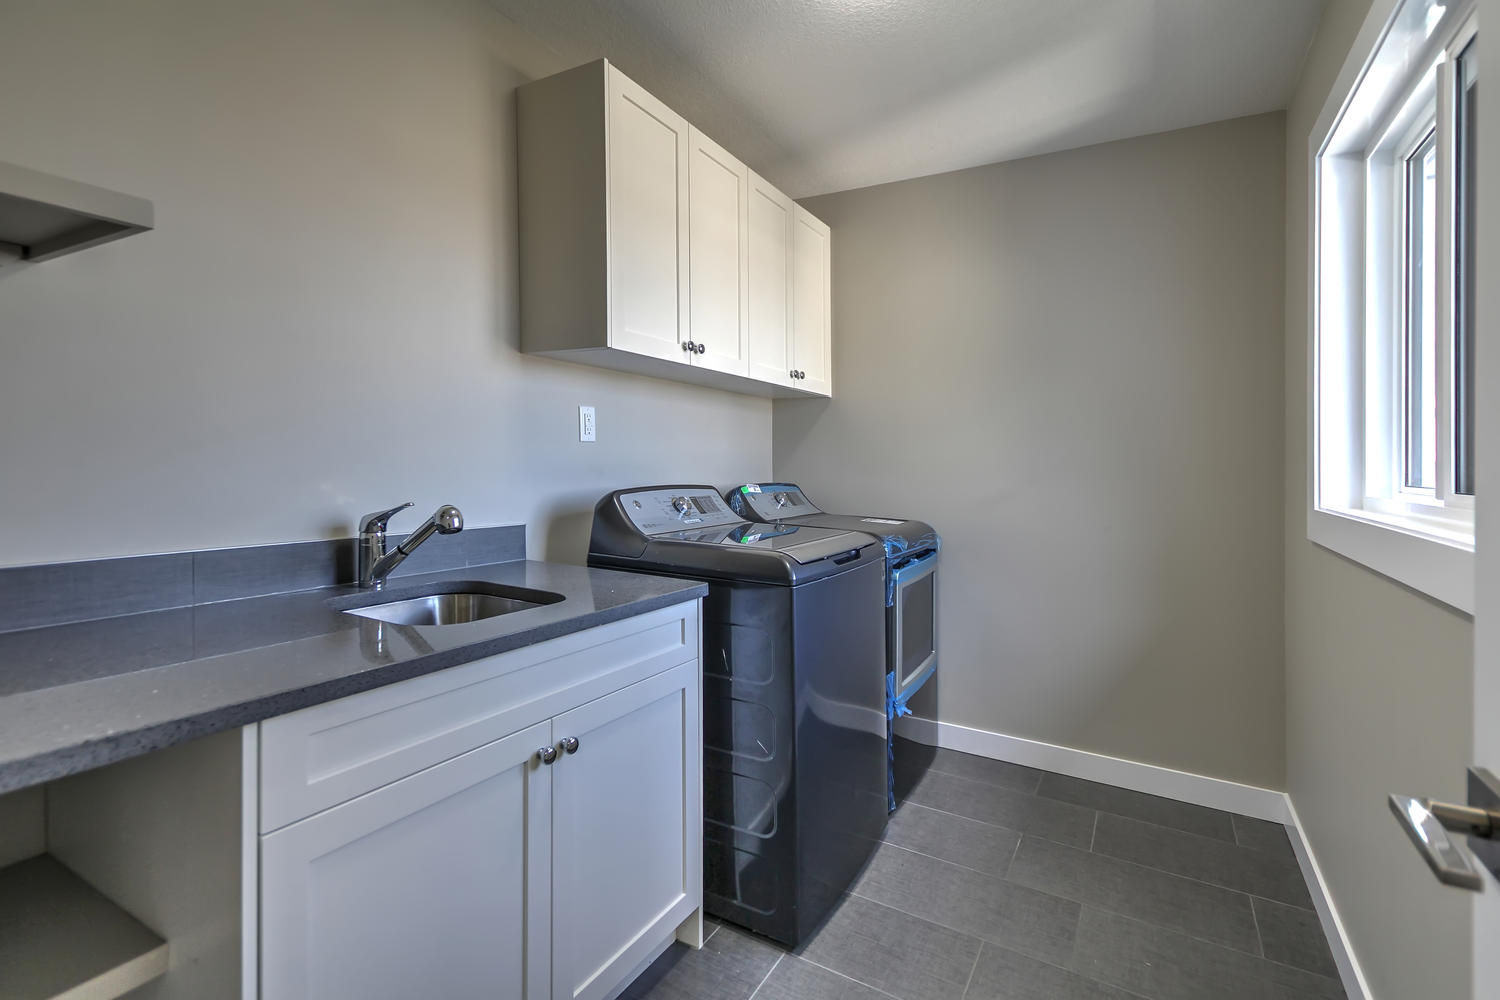 9603 106 Ave Morinville AB T8R-large-038-27-Laundry Room-1500x1000-72dpi.jpg